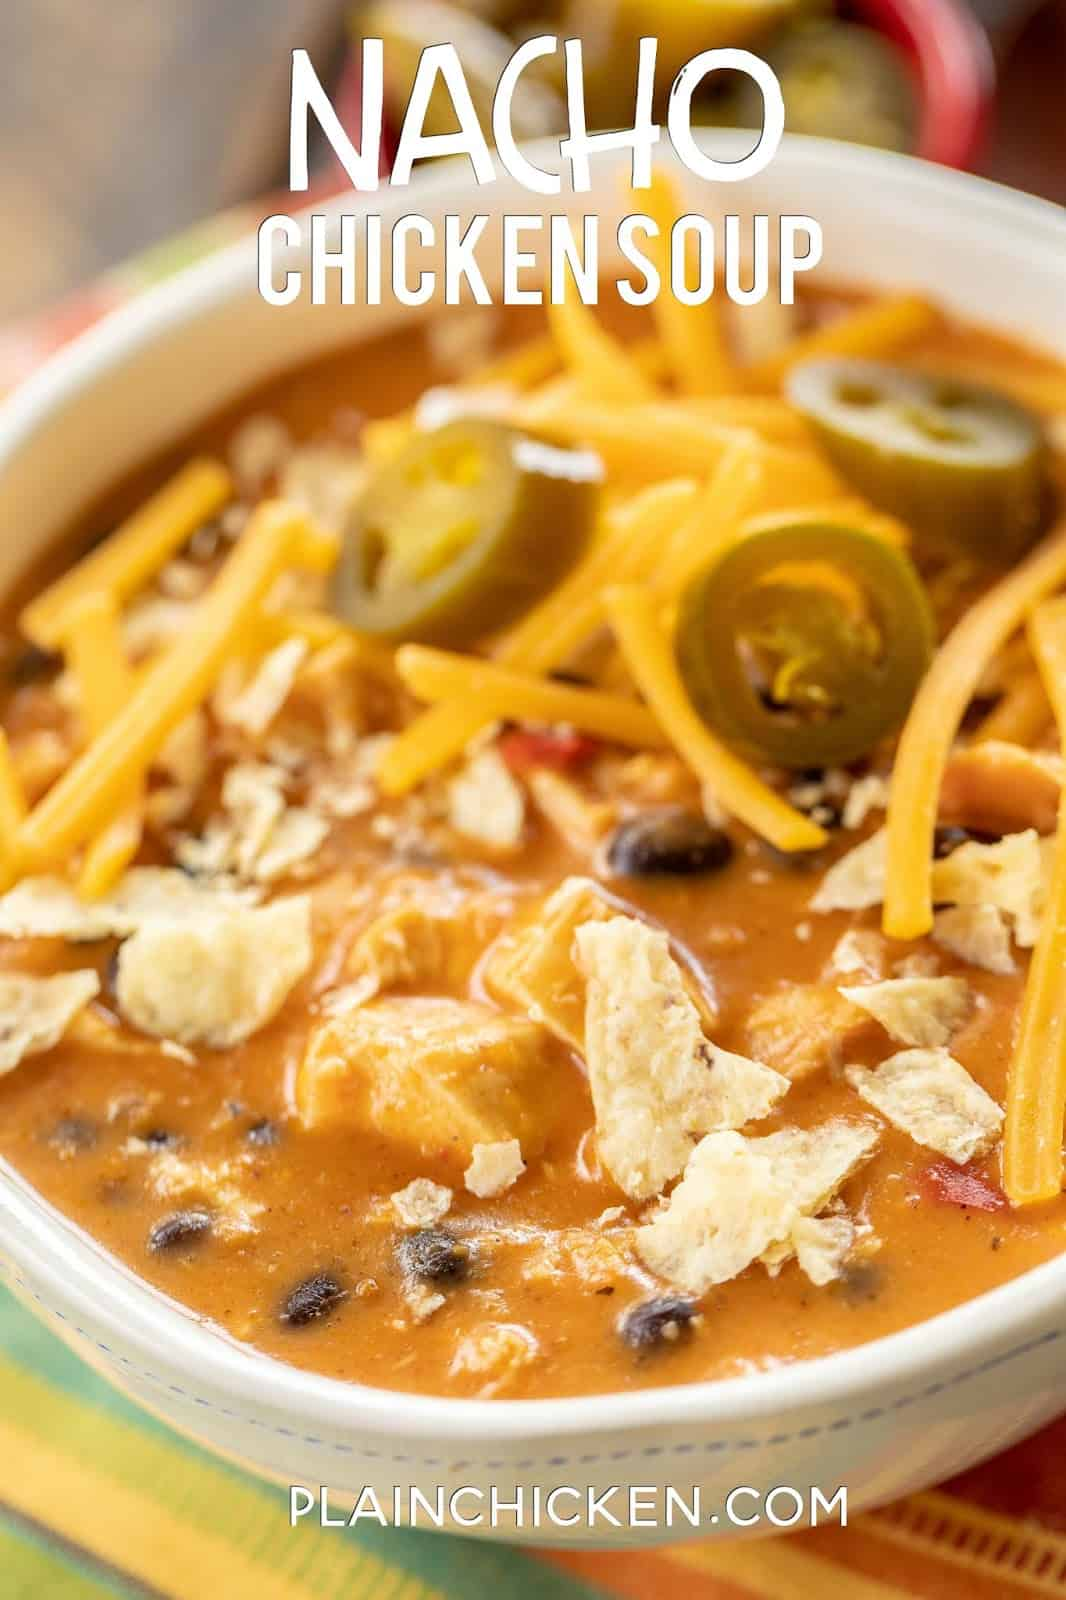 Nacho Chicken Soup - SO good and ready to eat in about 20 minutes. Use a rotisserie chicken for easy prep! Chicken, taco seasoning, nacho cheese soup, milk, black beans and diced tomatoes and green chiles. Top soup with your favorite taco toppings. We ate this twice in one week! SO good!!! #soup #chicken #mexican